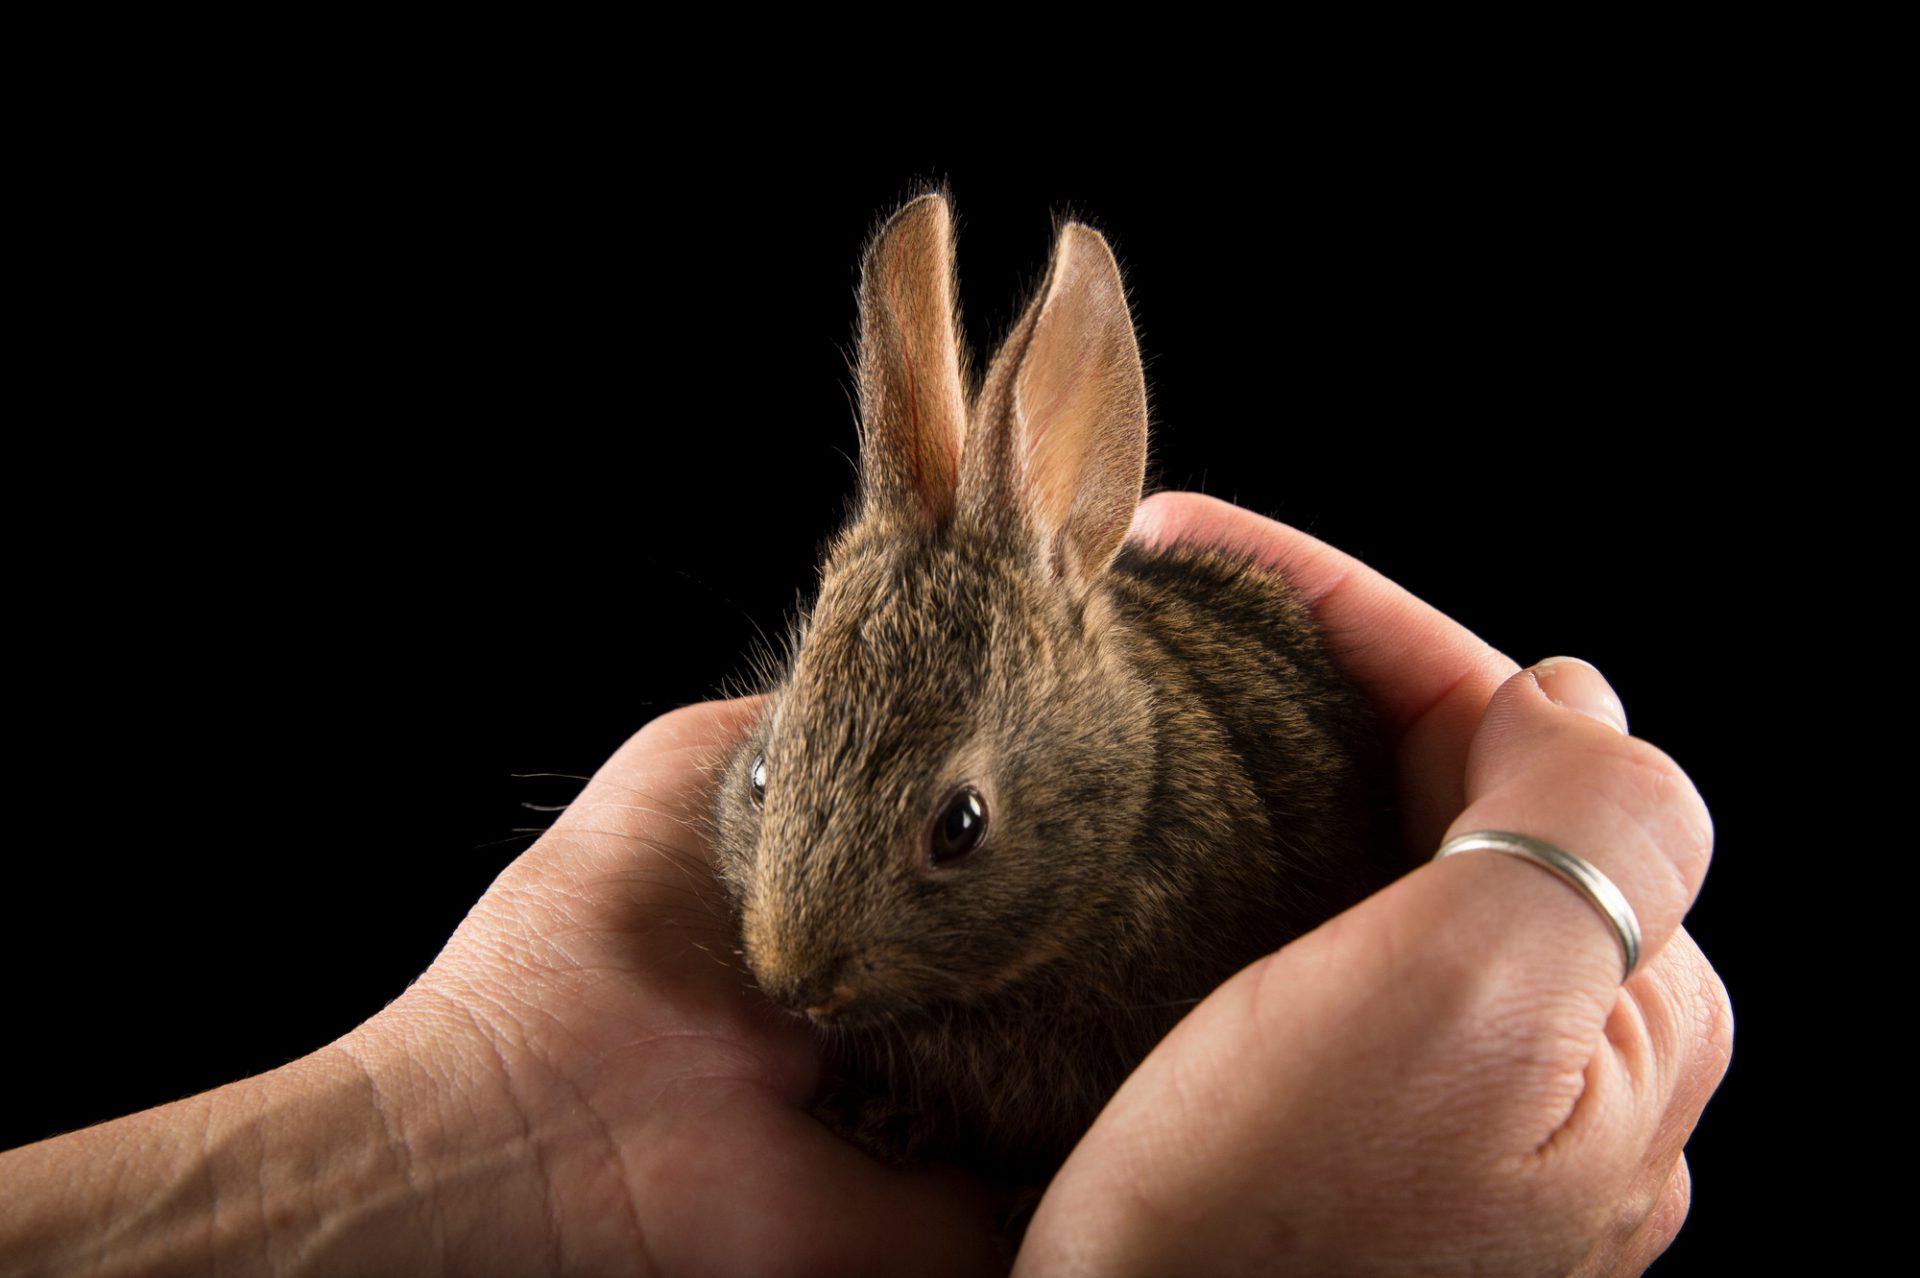 Picture of a juvenile western brush rabbit (Sylvilagus bachmani) from a private collection.